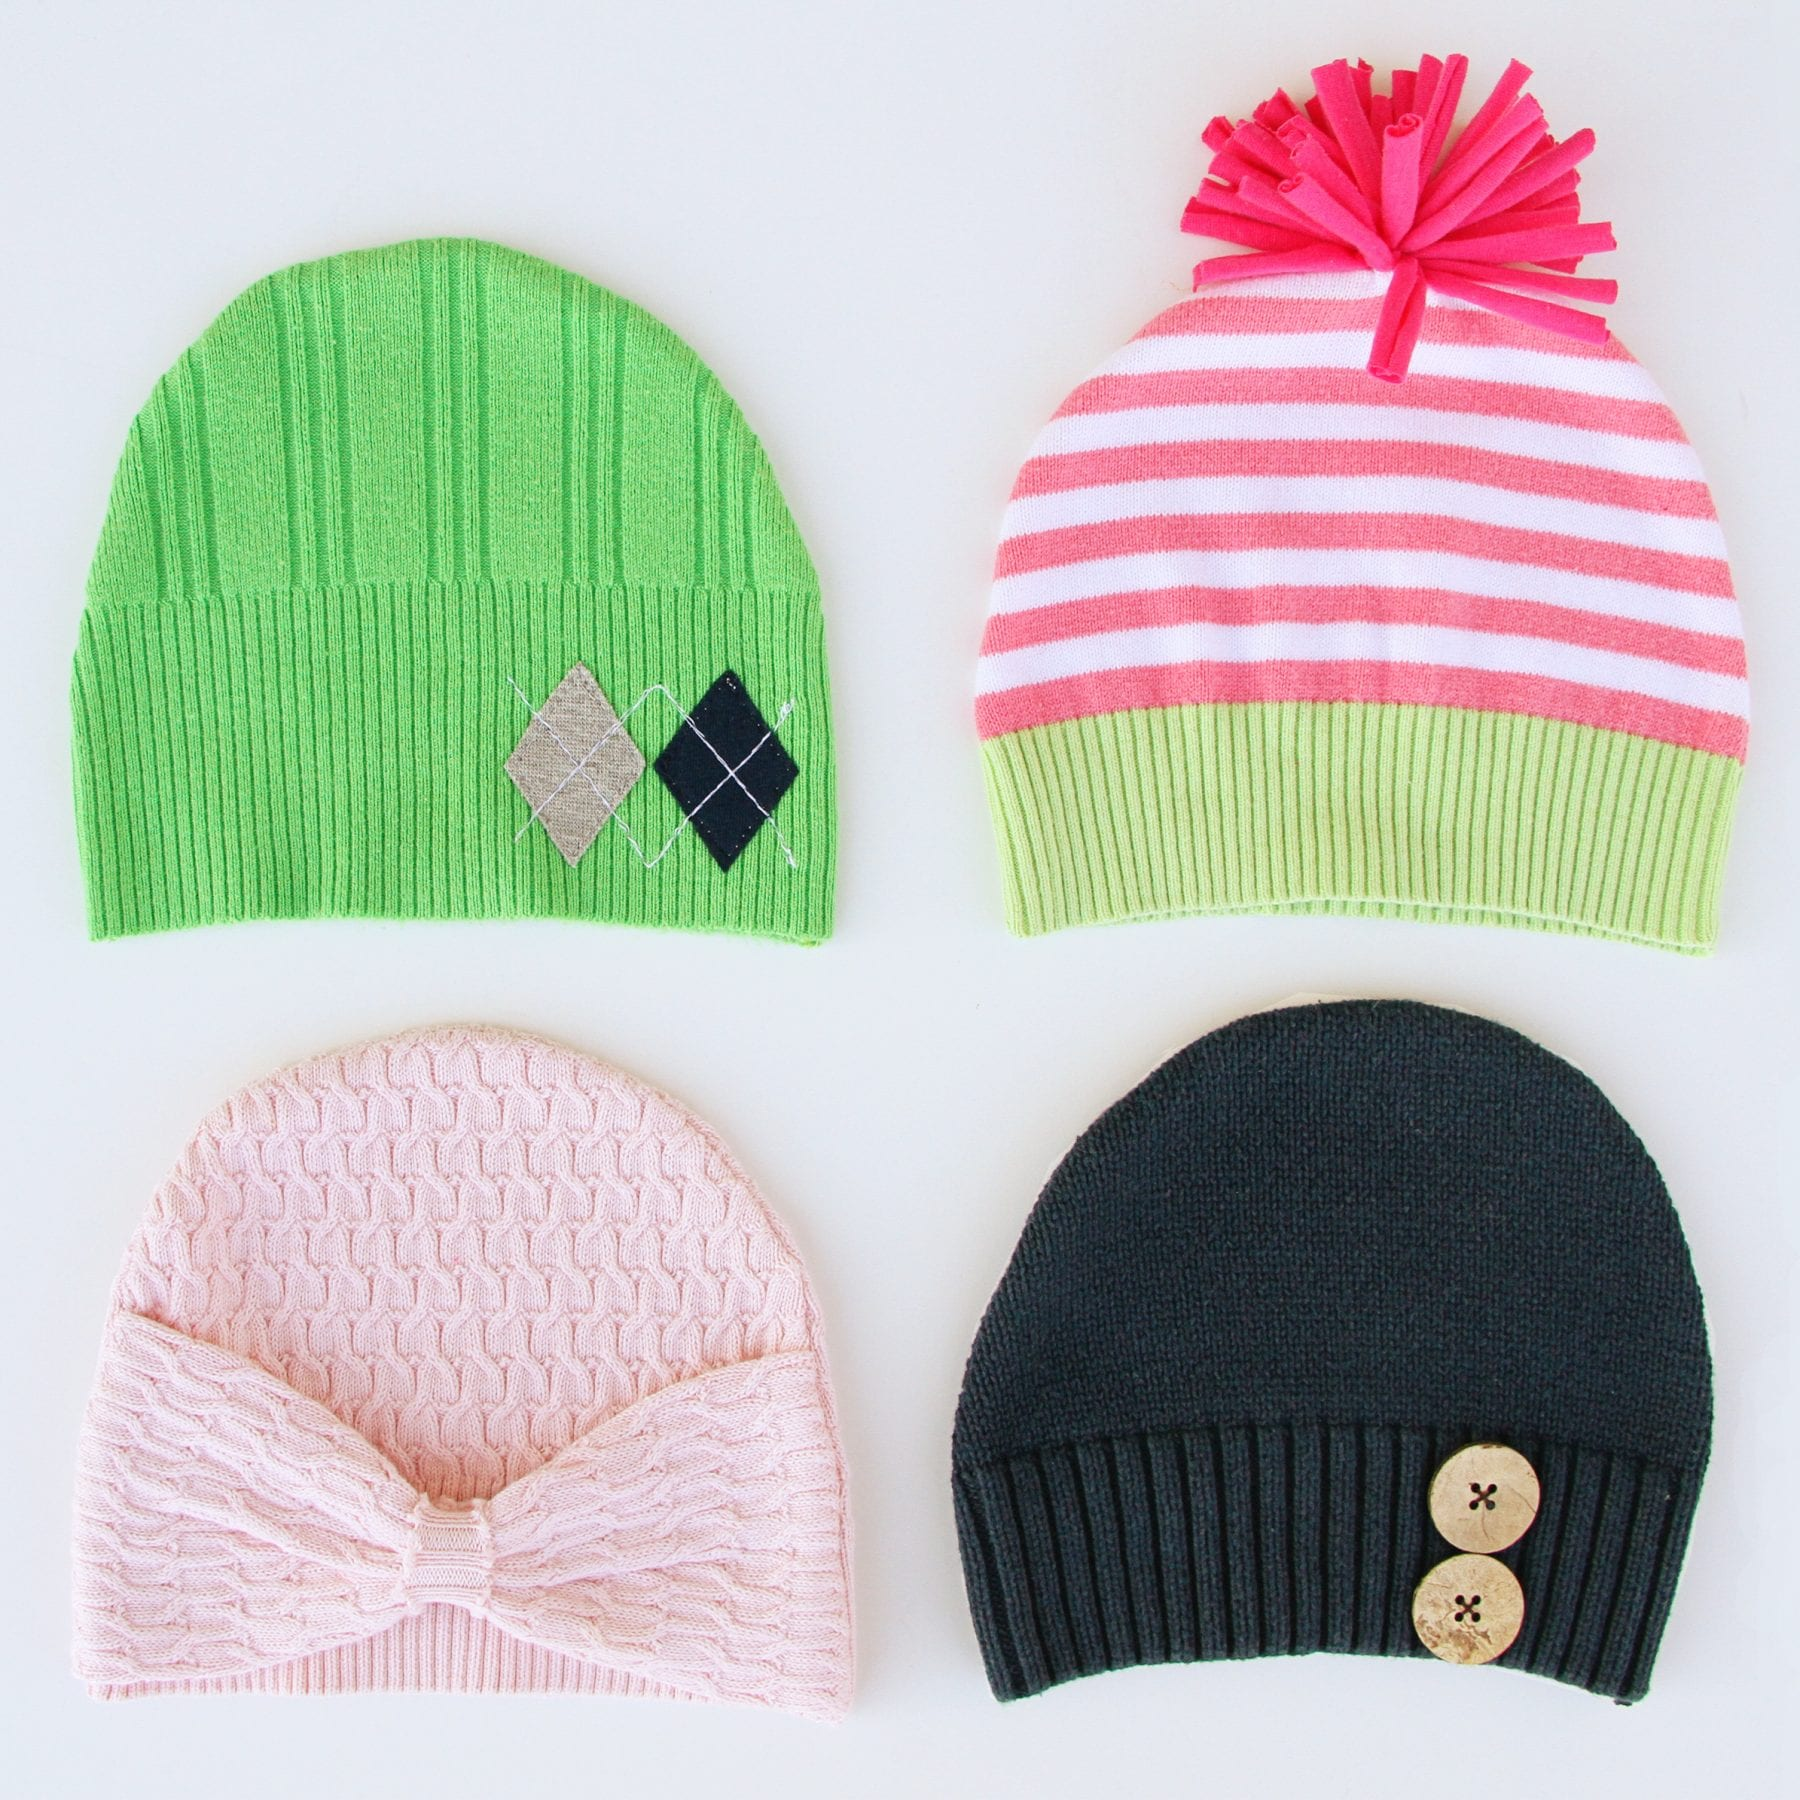 hats from sweaters 1